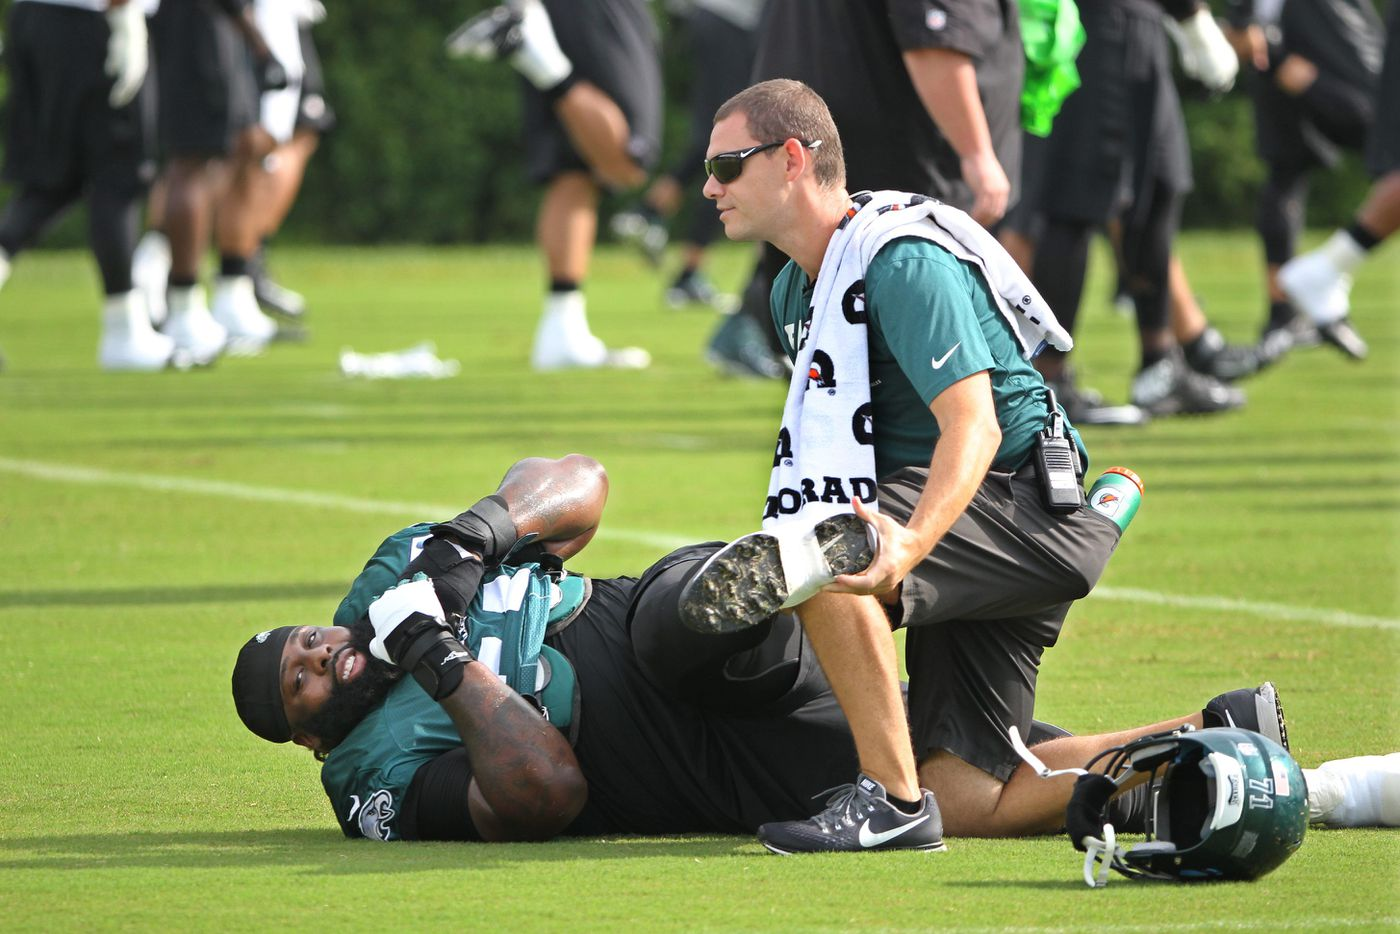 Eagles announce training camp schedule, open practice dates